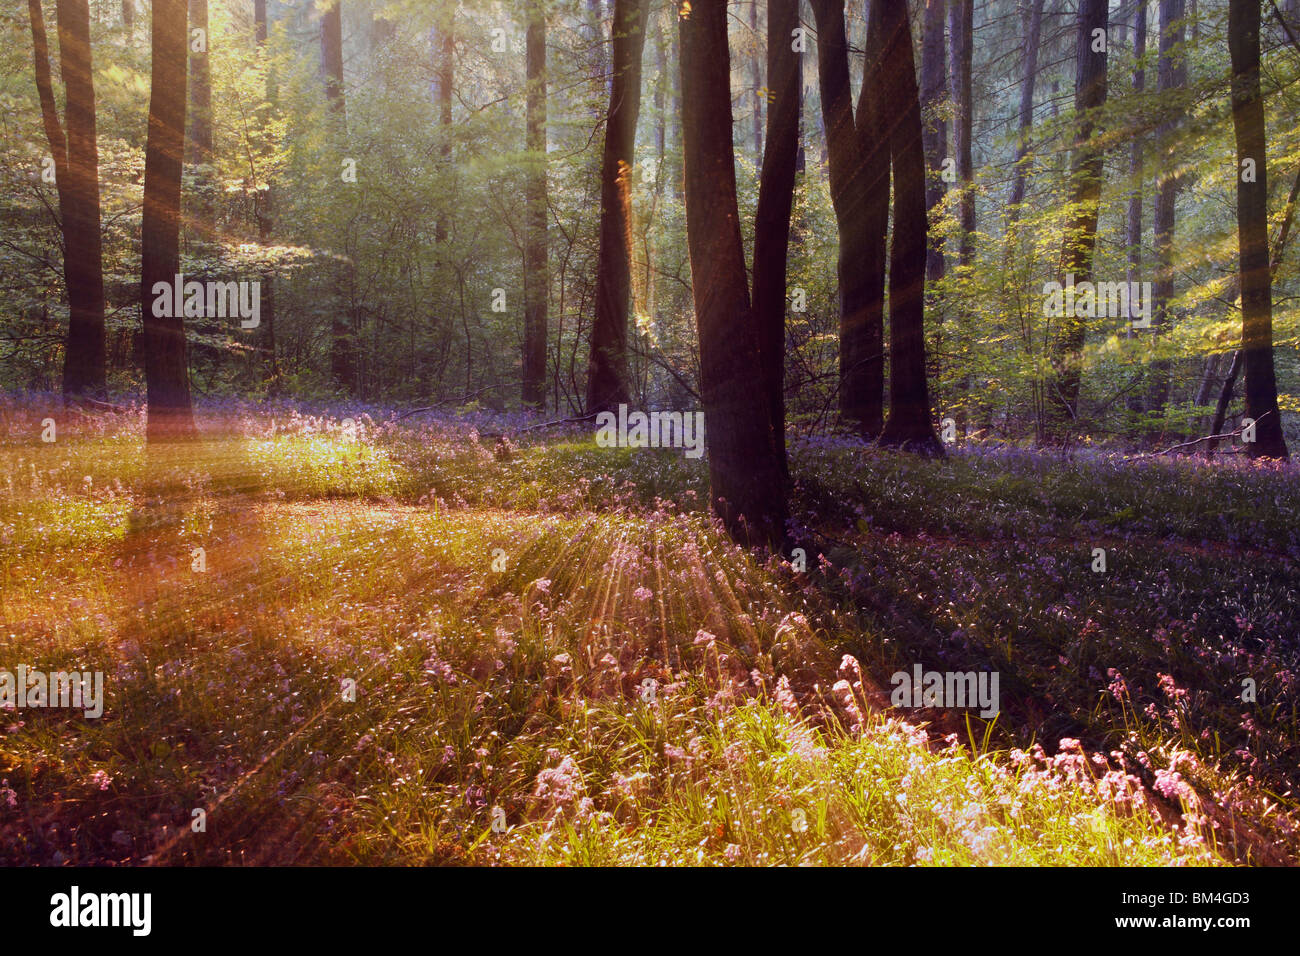 Impressions of the classic bluebell wood in the Forest of Dean, Gloucestershire, England Stock Photo